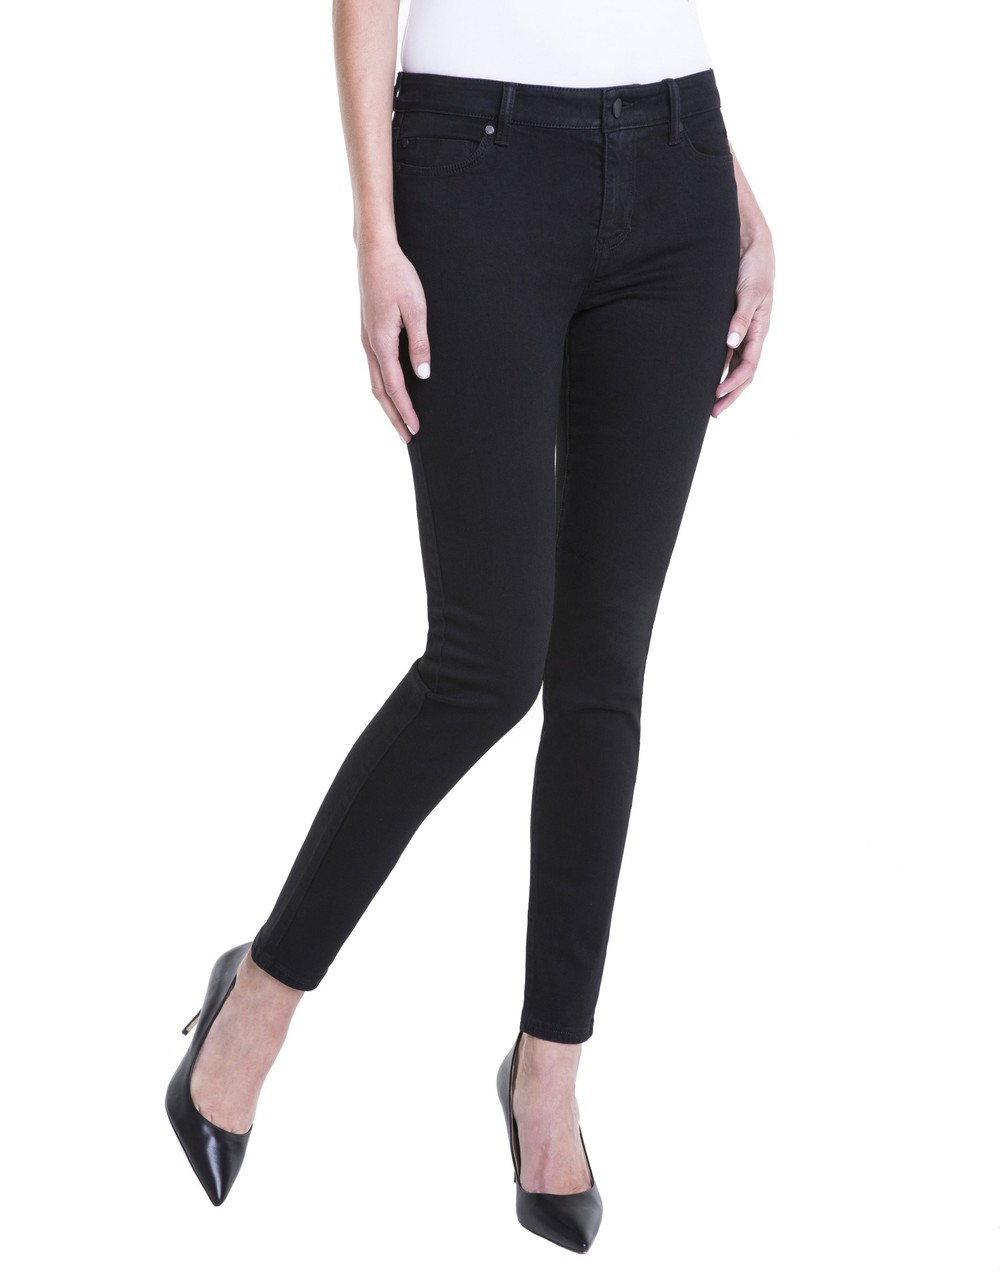 Liverpool Petite Abby Skinny Jeans in black